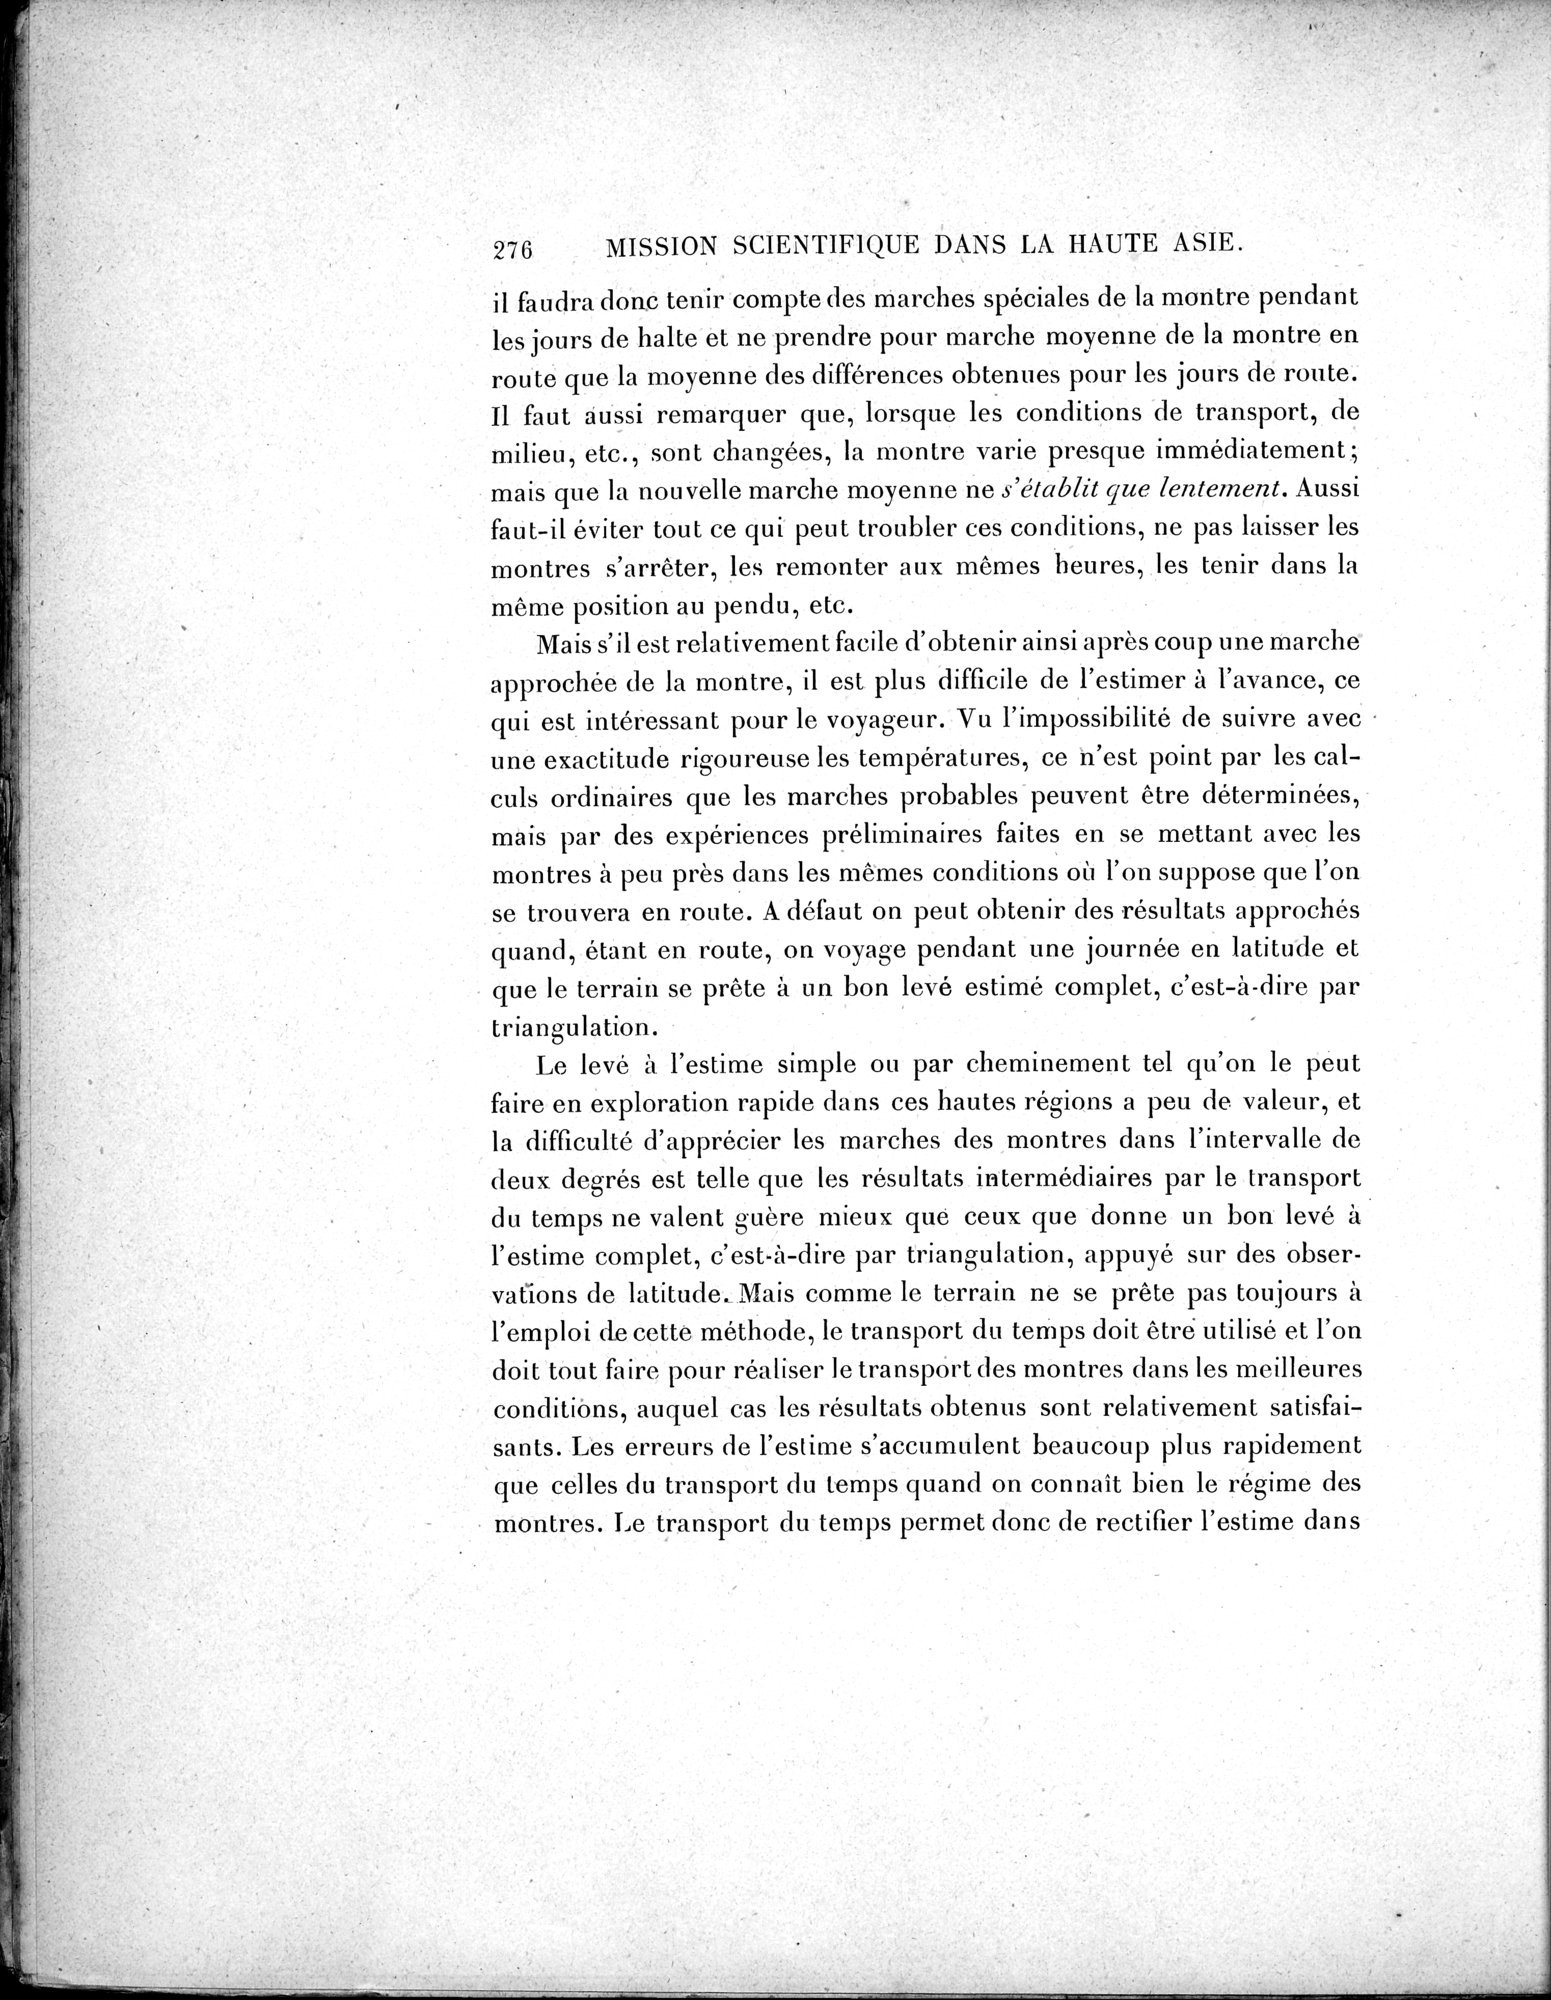 Mission Scientifique dans la Haute Asie 1890-1895 : vol.3 / Page 294 (Grayscale High Resolution Image)